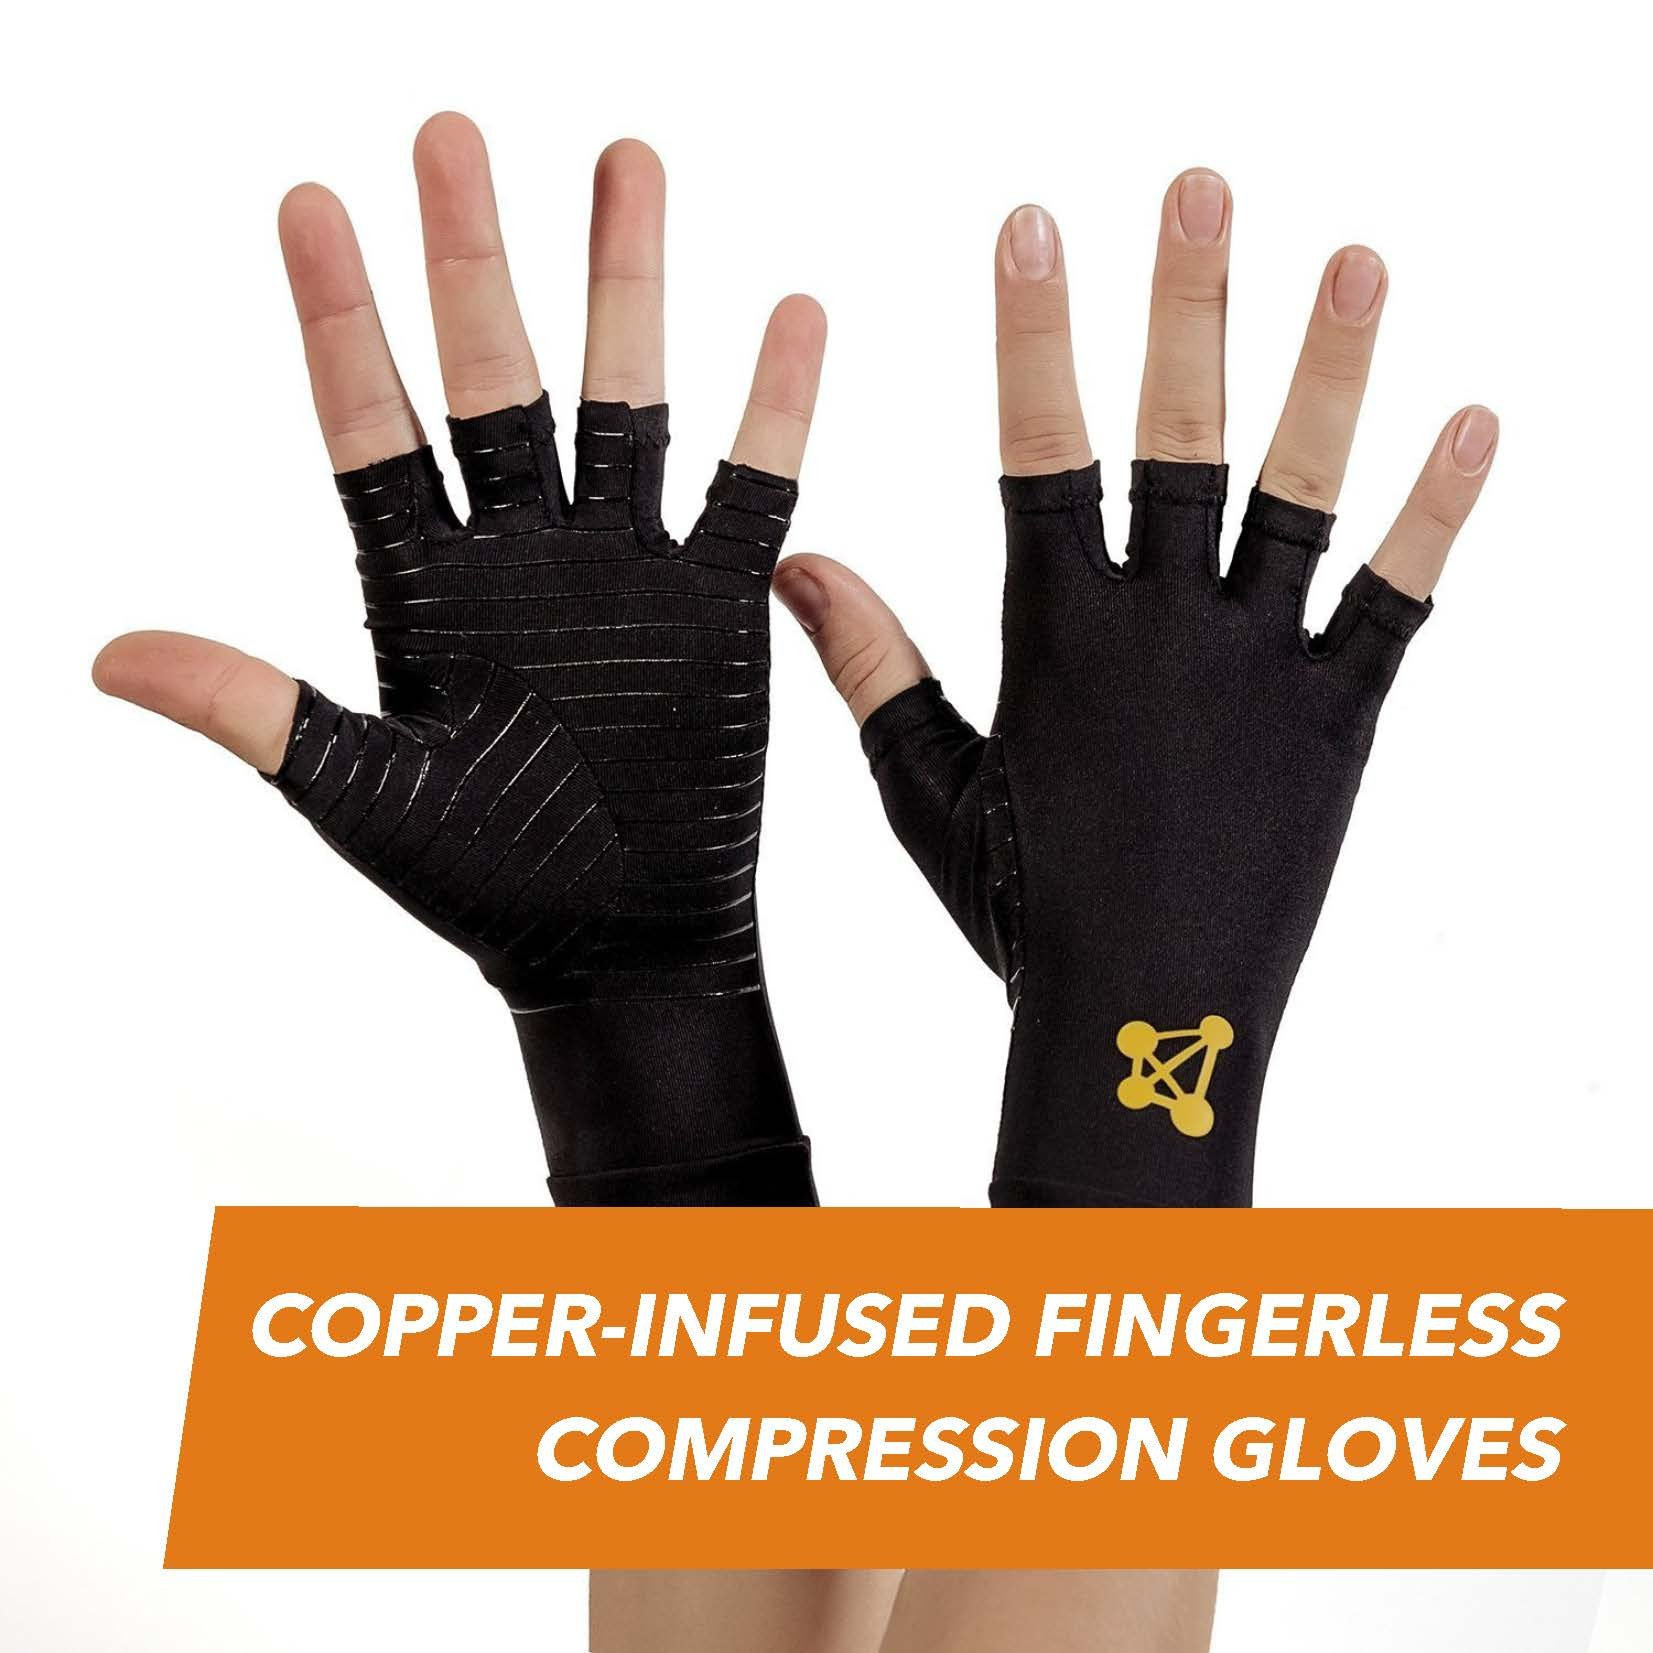 CopperJoint Arthritis Gloves #1 Copper Infused Compression - GUARANTEED To Speed Up Recovery & Relieve Symptoms of Arthritis, RSI, Carpal Tunnel, Tendonitis & More - Men & Women - 1 Pair - Medium